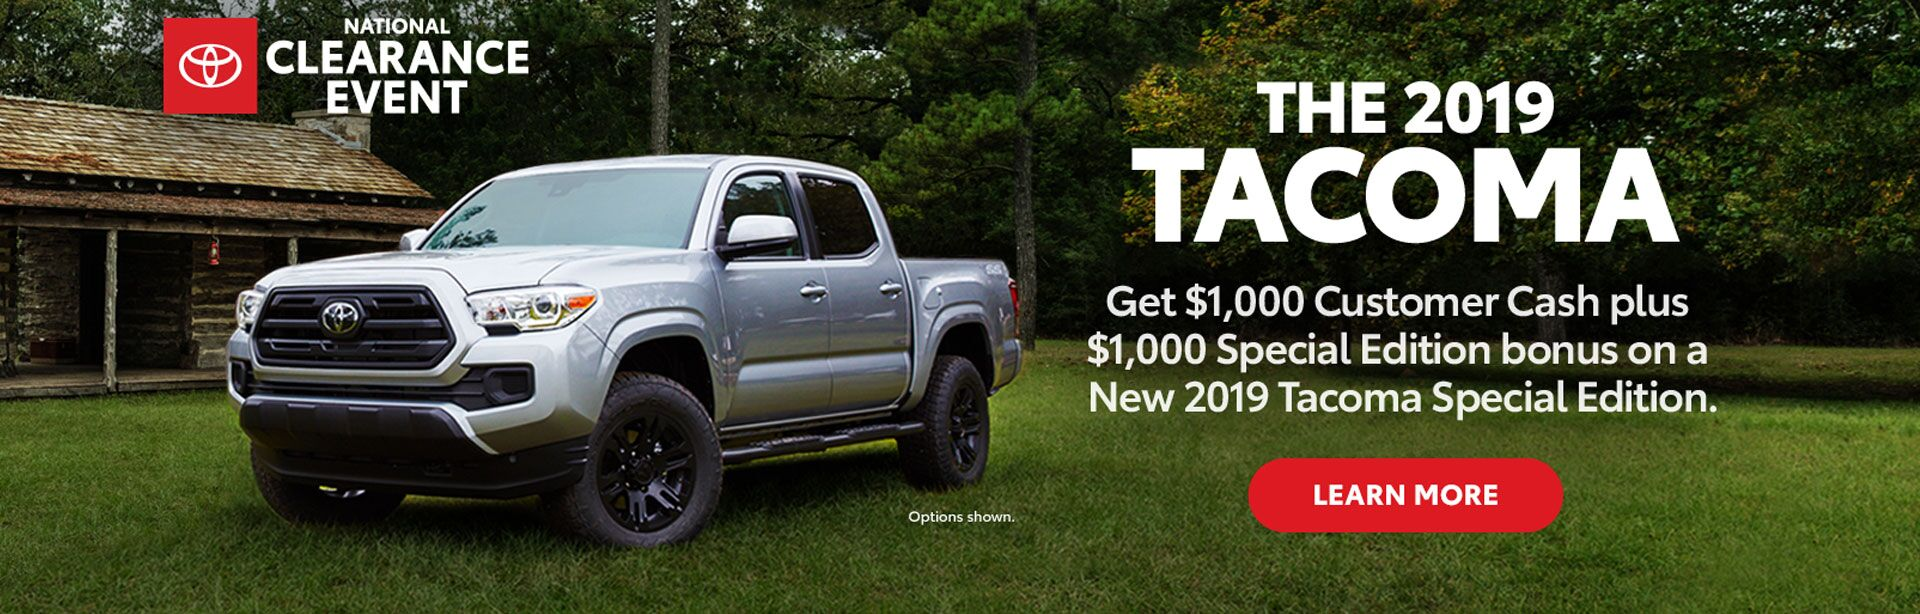 2019 August GST Tacoma